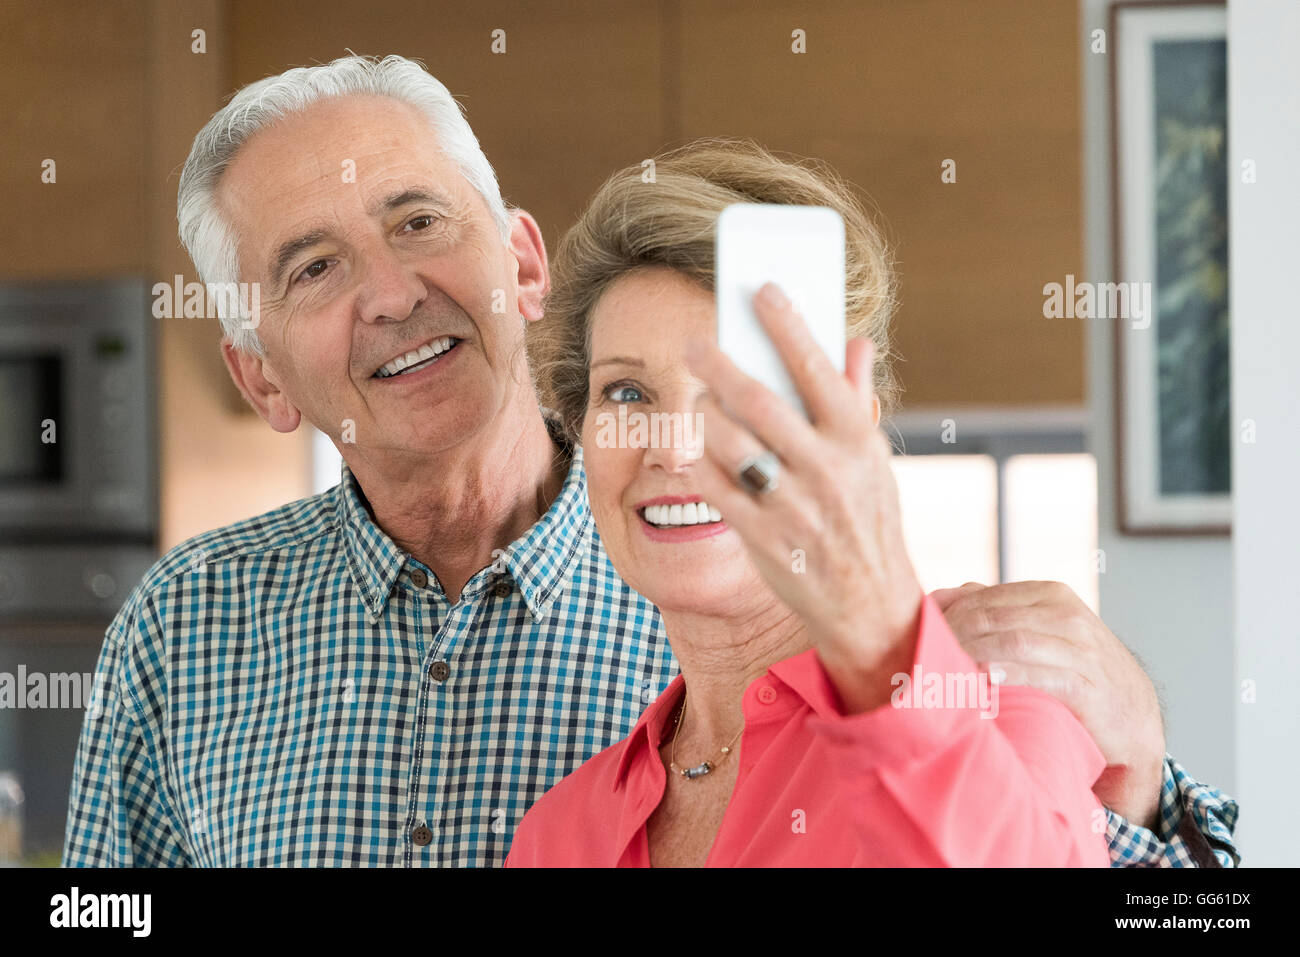 Happy senior couple taking selfie with camera phone - Stock Image